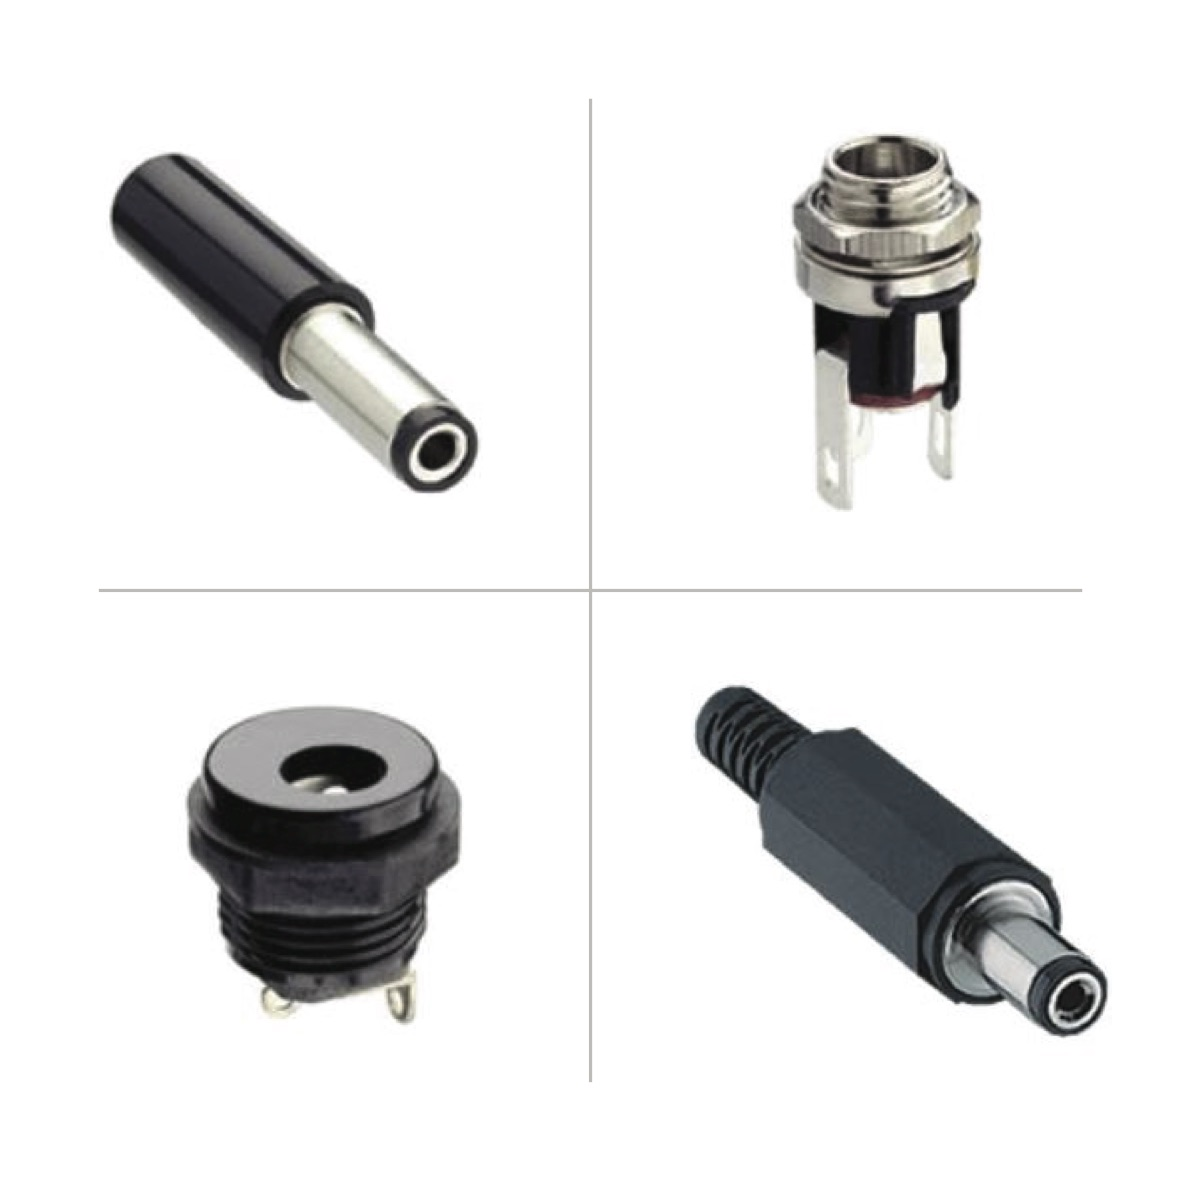 DC Power Connectors